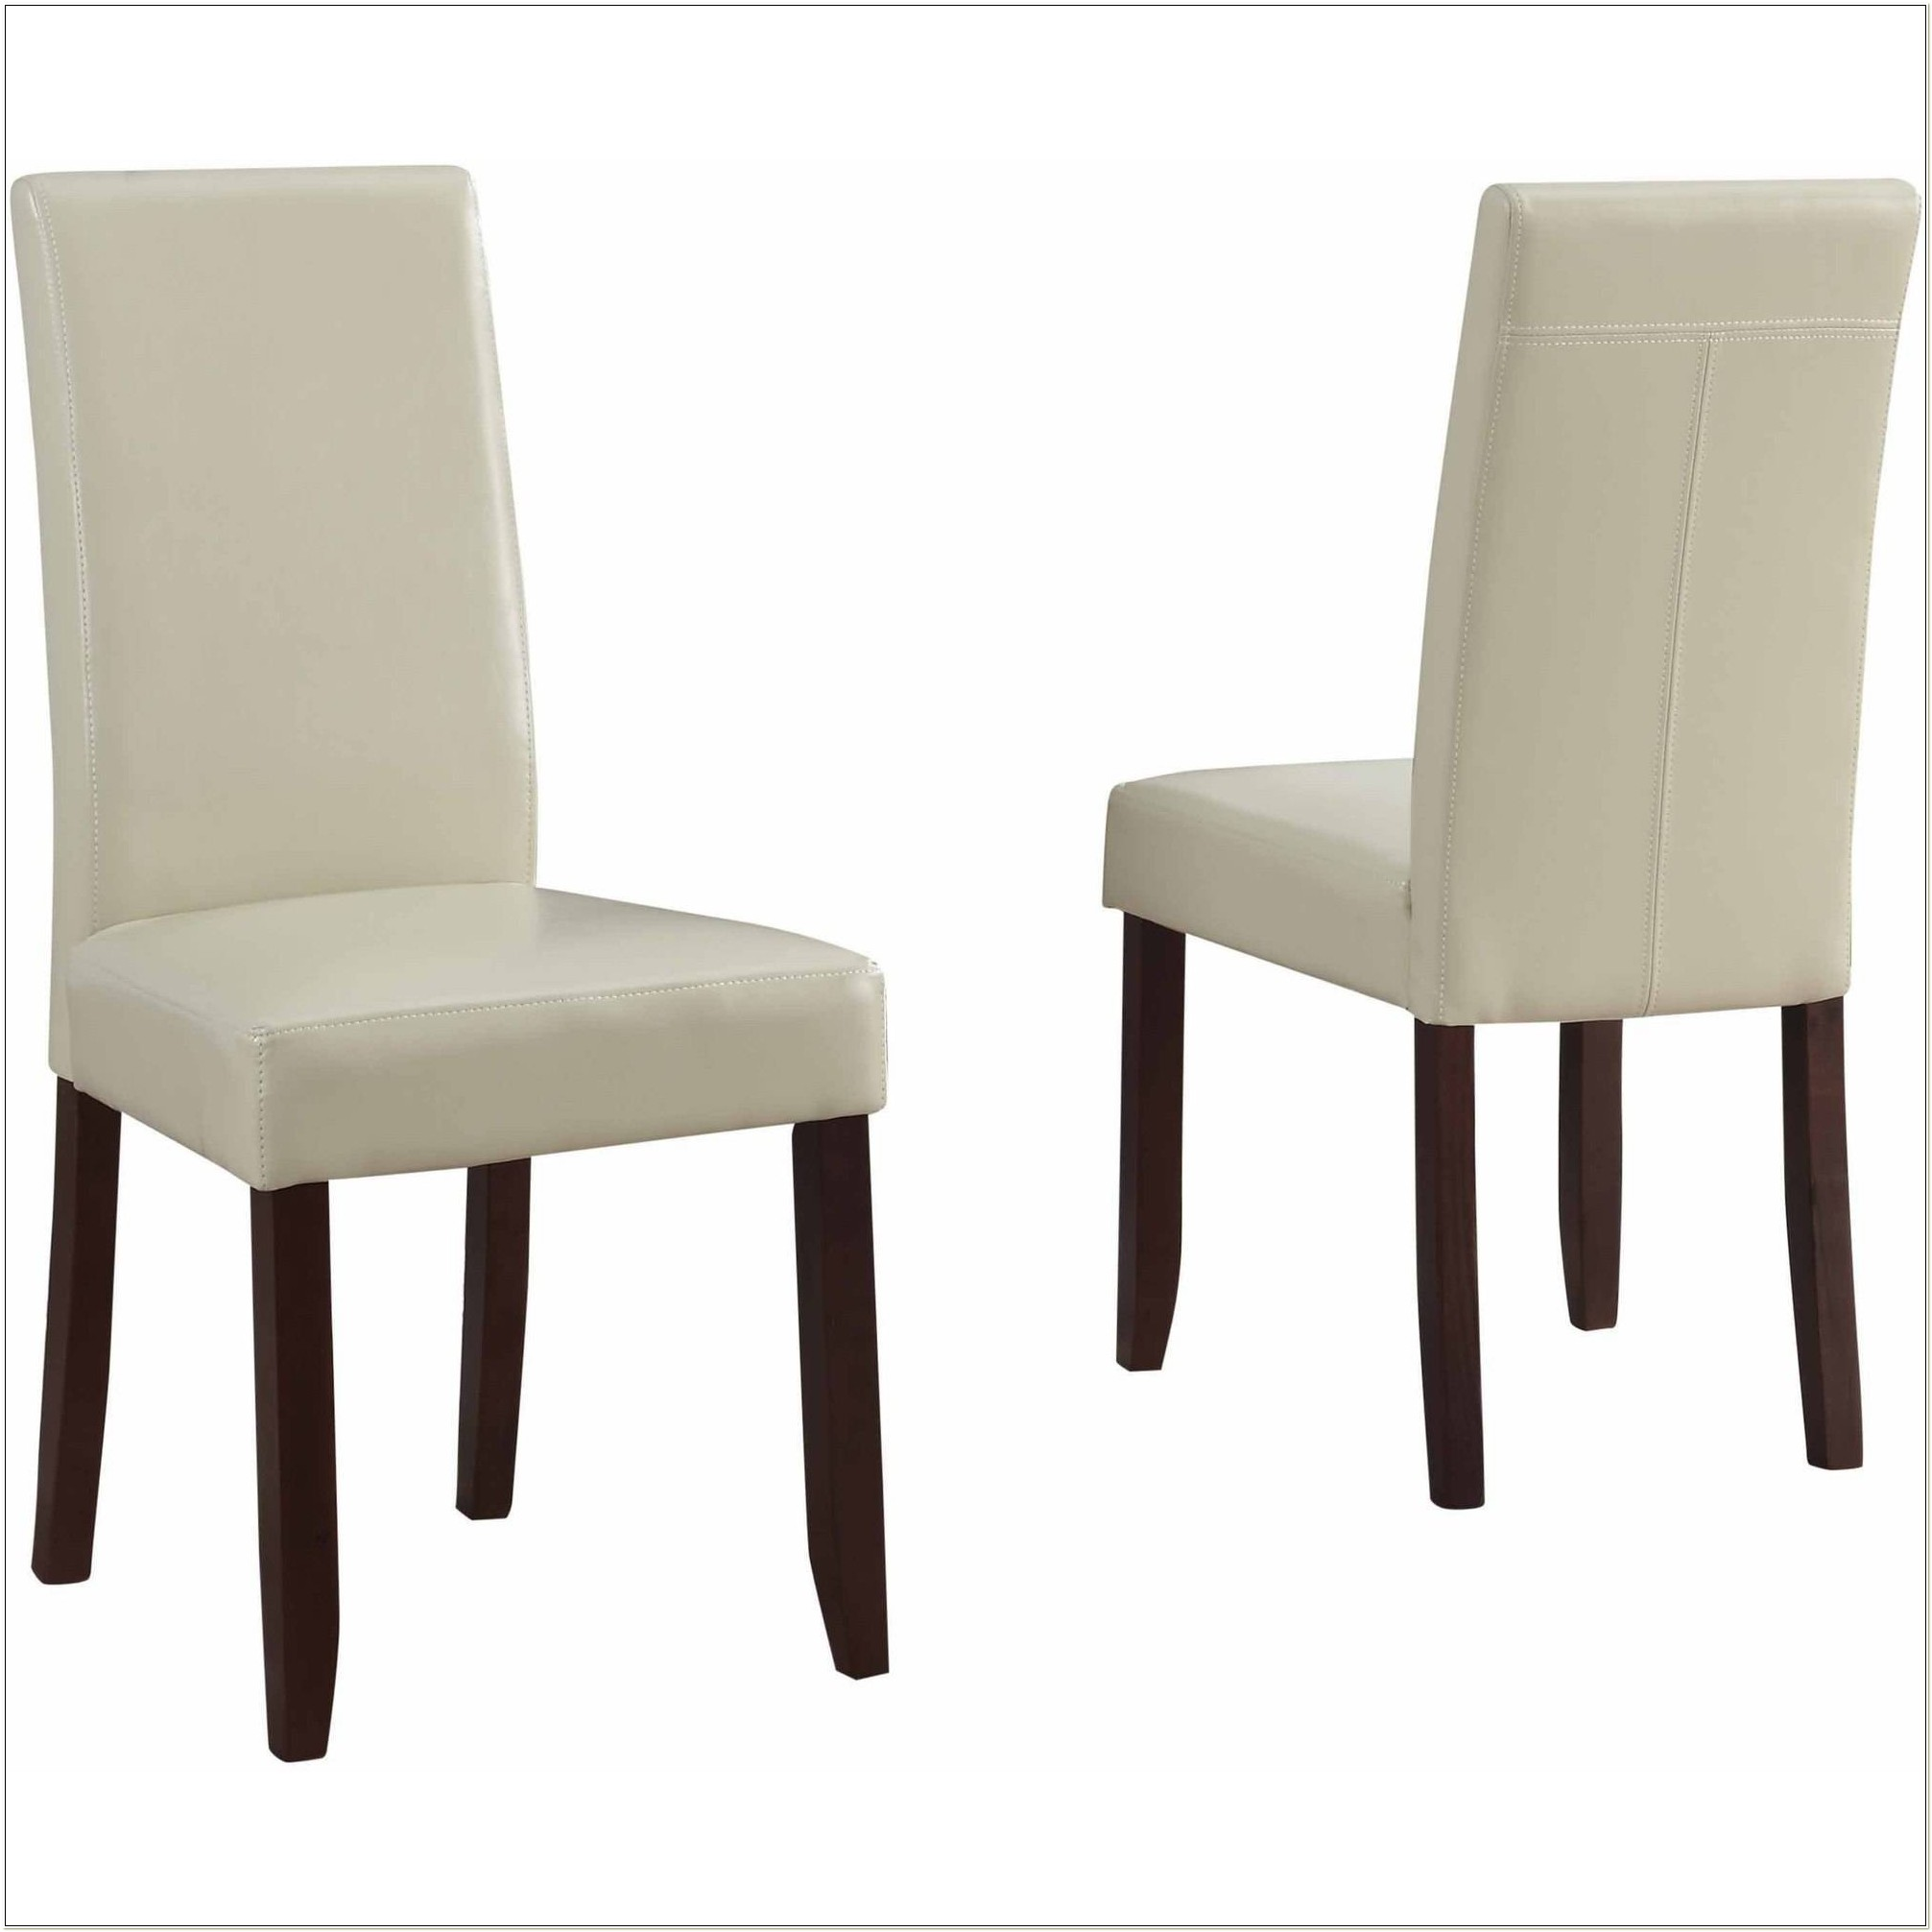 Walmart Leather Dining Room Chairs